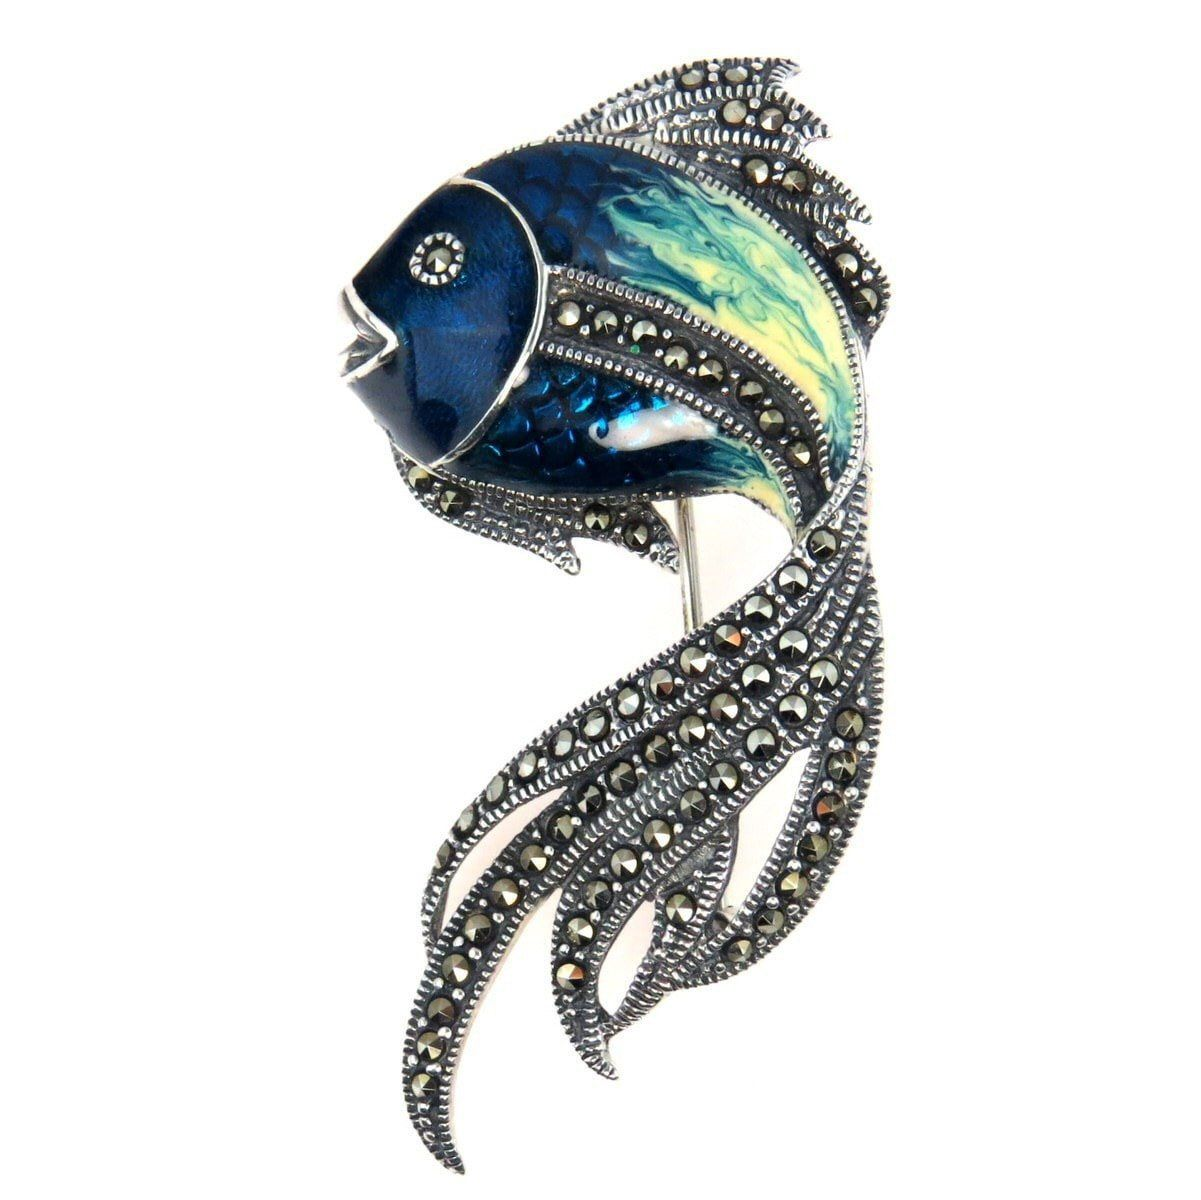 """Sterling Enamel Marcasite Koi Fish Brooch, Vintage, 1930s to 1980s   This happy fish brooch is so cute! Made in Sterling Silver, hand applied vitreous enamel in shades of blue on the body. The eyes, fins, and gills are set with marcasite pave. This cutie measures 2 1/4"""" by 1 1/8"""" and weighs approximately 10 gram. Pre-owned and in excellent condition with no damage. Marked 925, AM for the maker and the number 1407. Estimated to date from the 1980's.  ✨ Only one at…"""